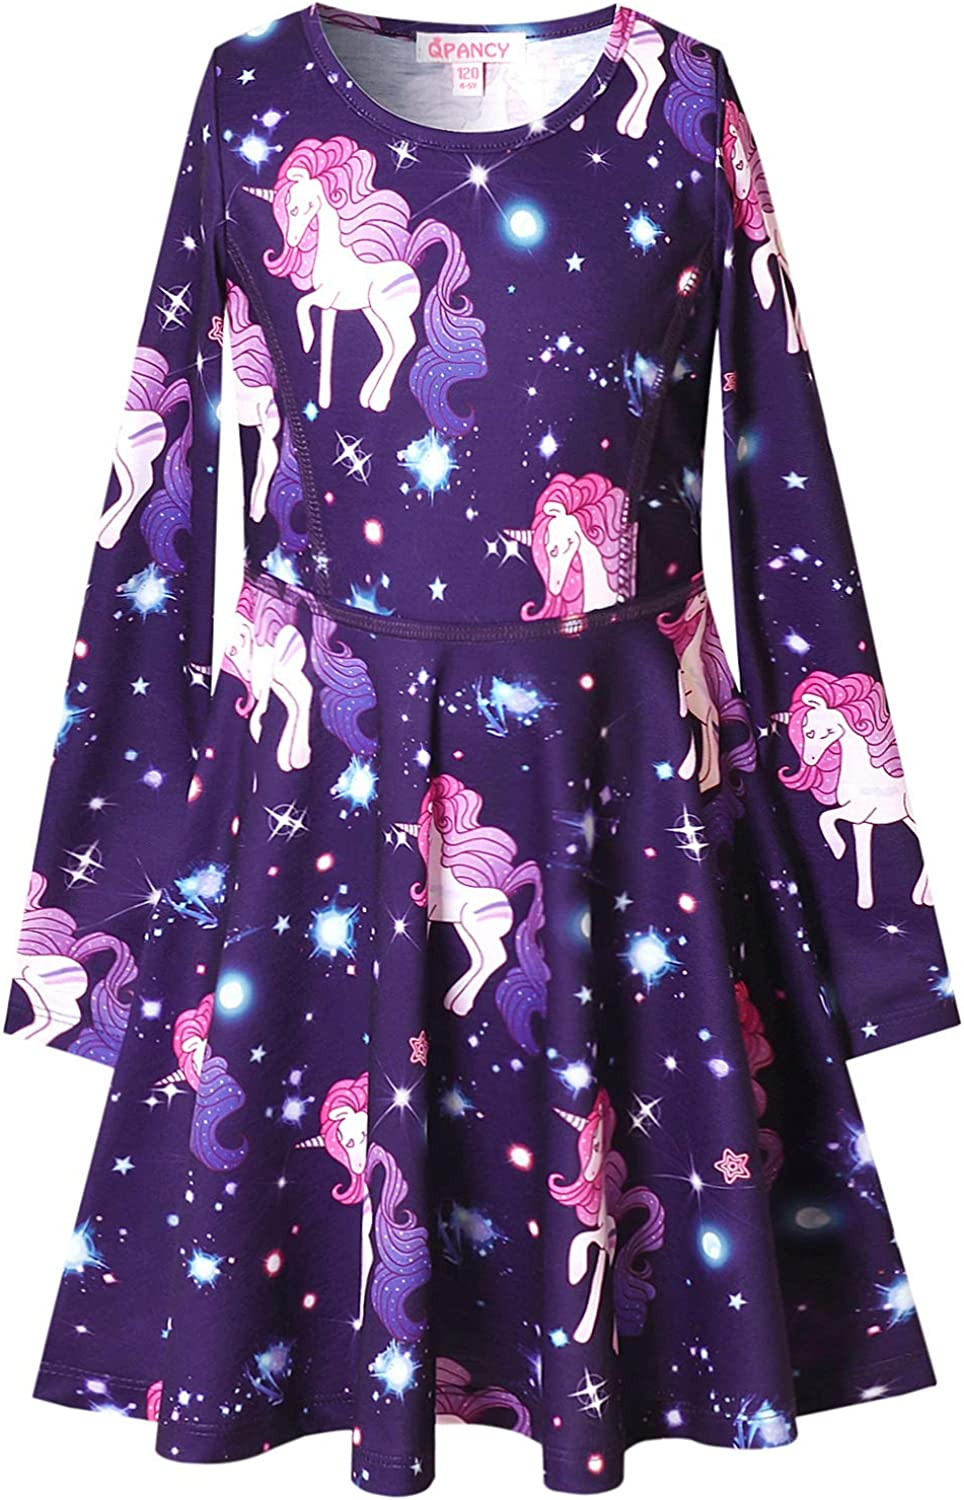 QPANCY Girls Long Sleeve Dresses for Kids Fall Winter Clothes Birthdayt Party Gifts